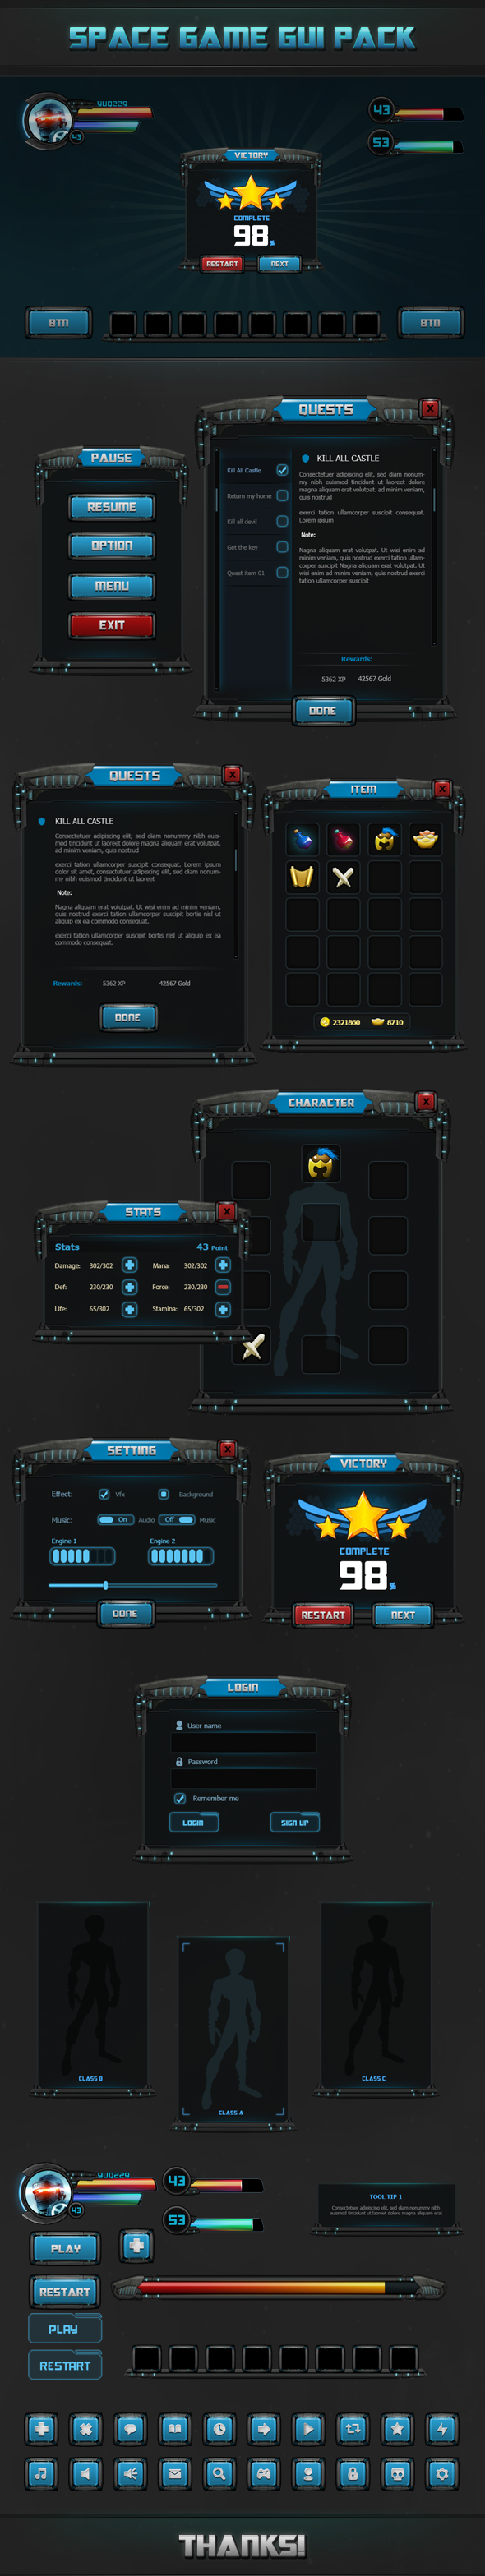 Fantasy - Space game gui Pack on Behance